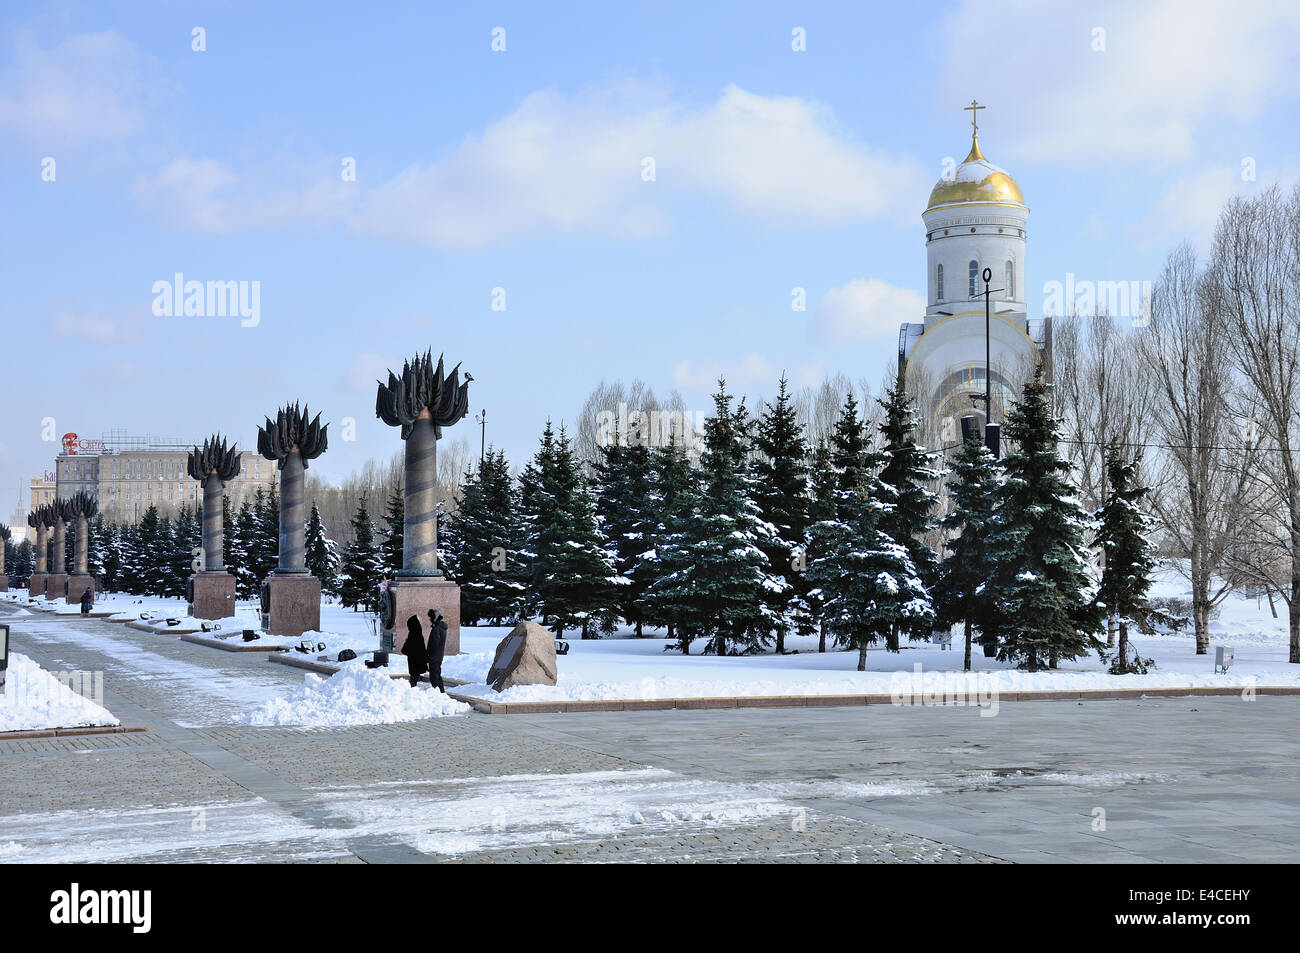 Church of St. George on Poklonnaya Hill in Moscow, Russia - Stock Image